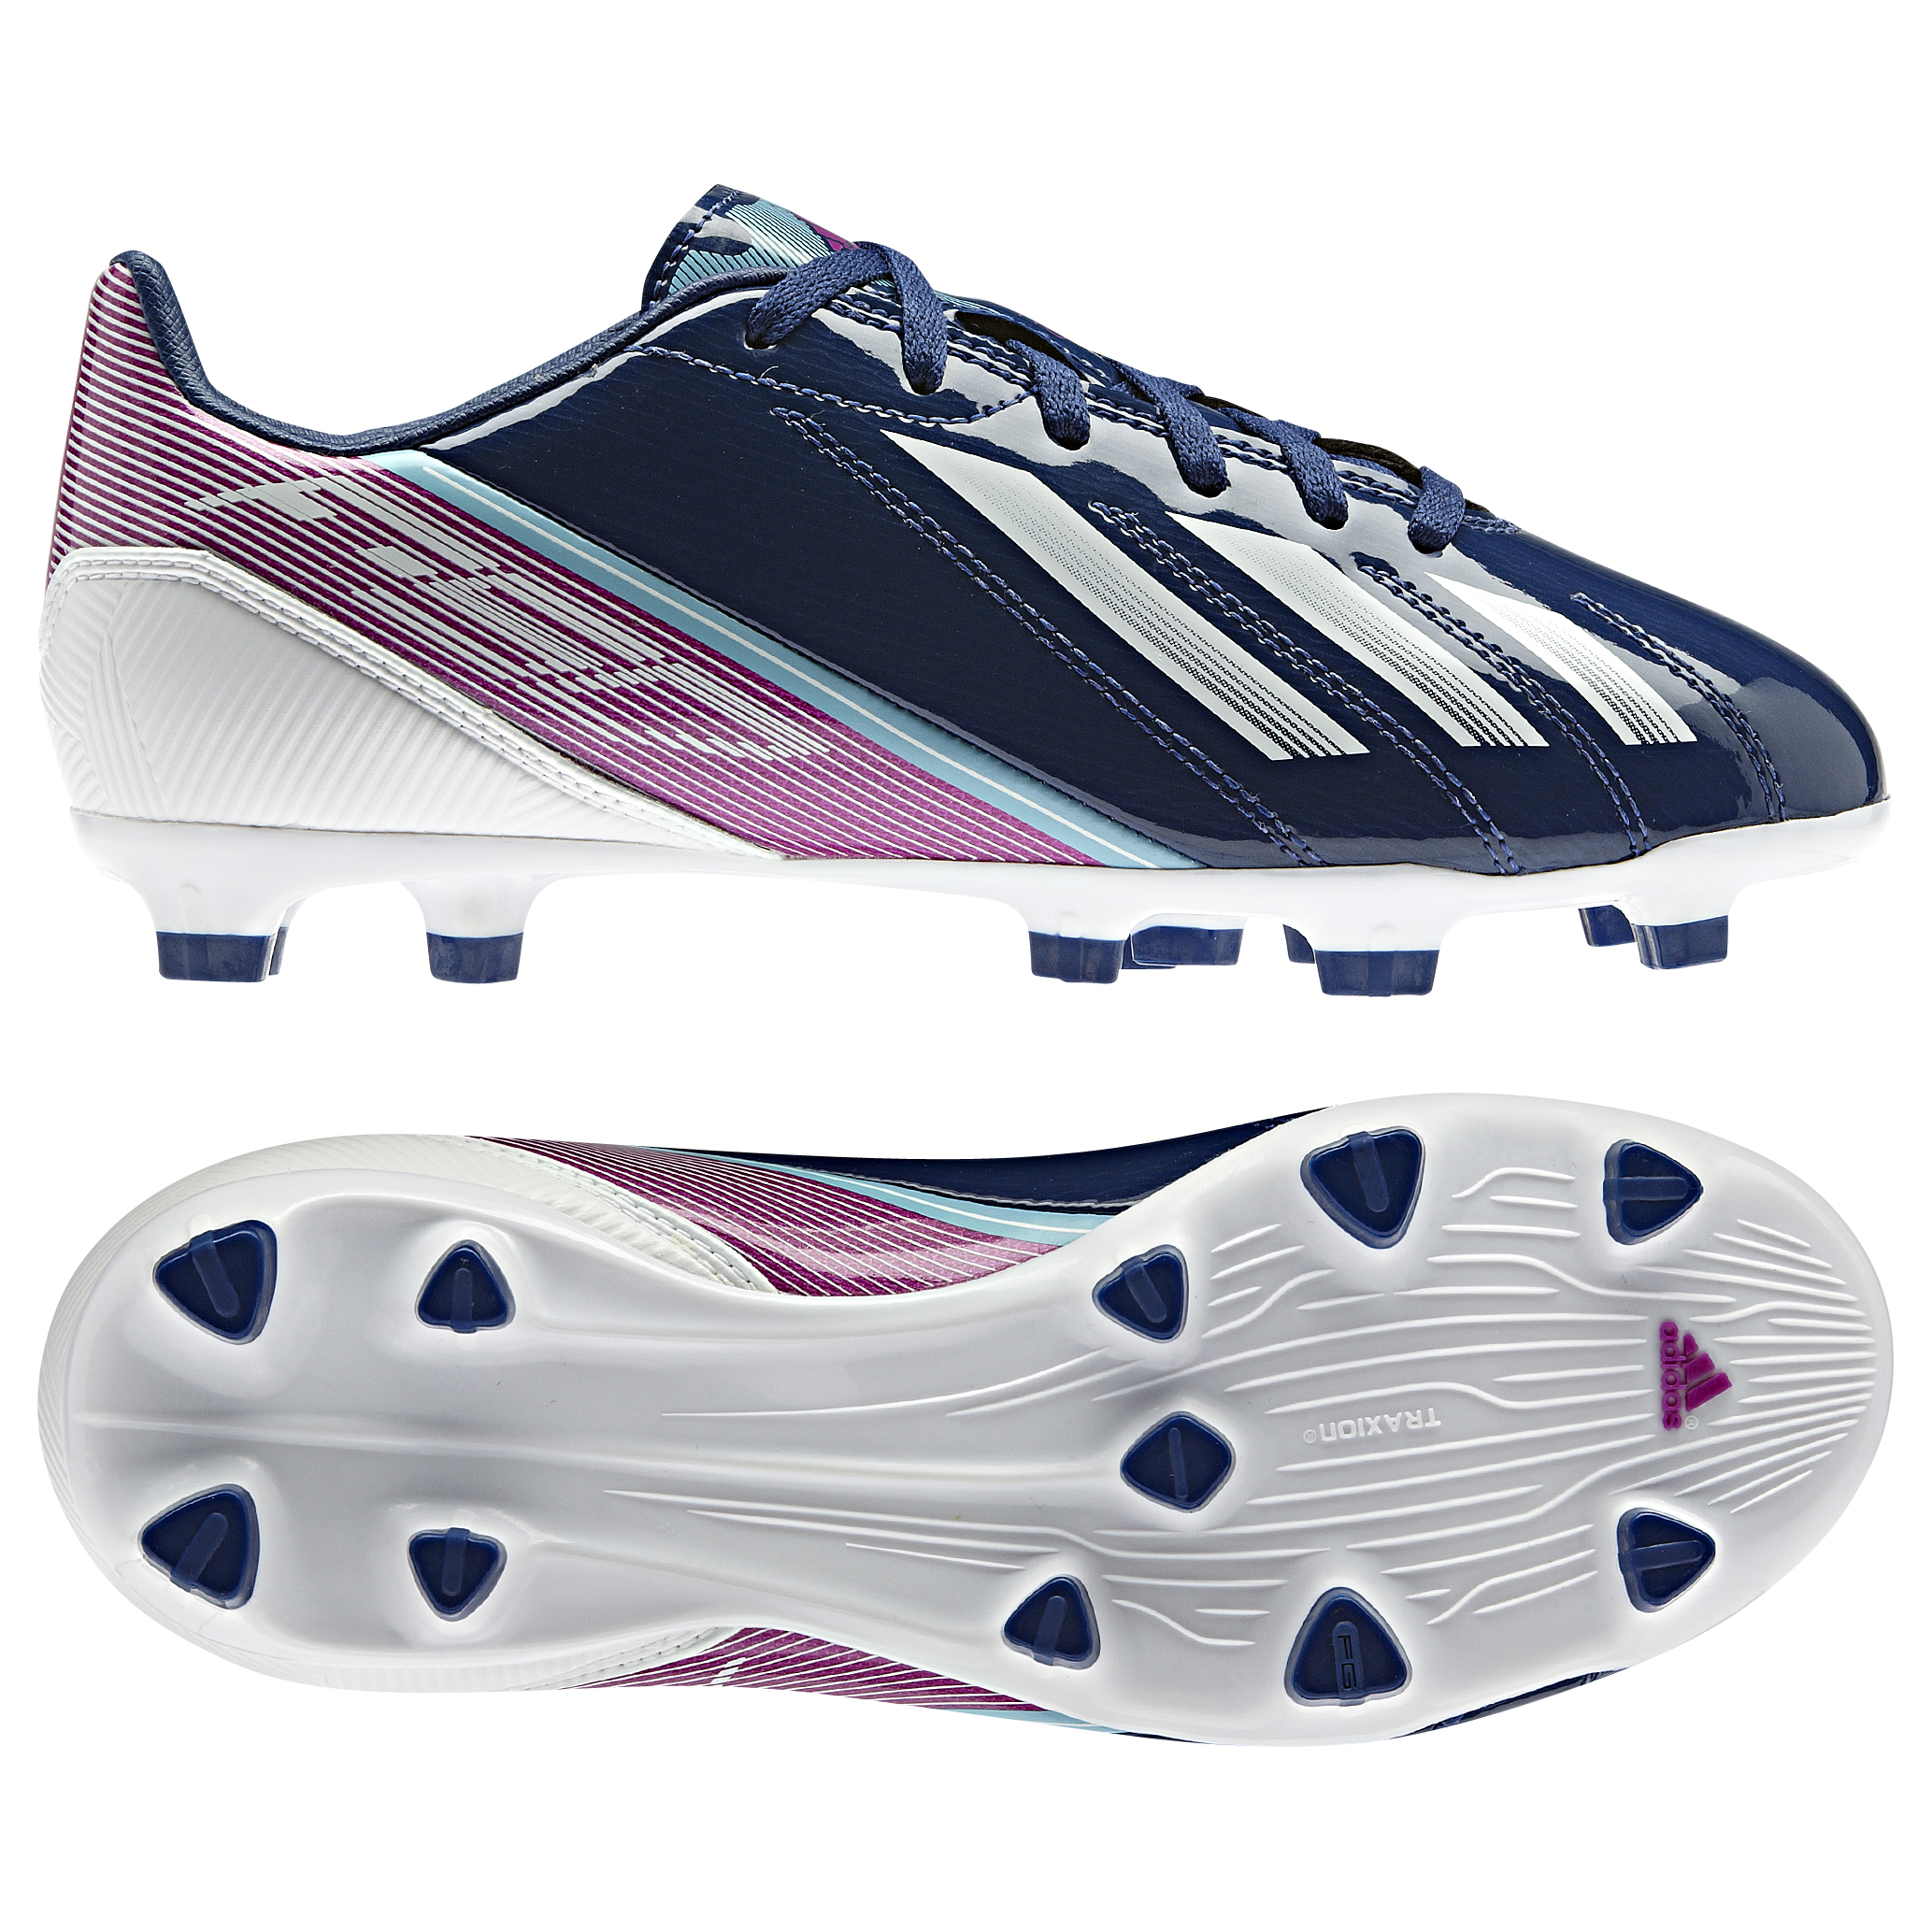 adidas AdiZero F10 TRX Firm Ground Football Boots - Dark Blue/Running White/Vivid Pink - Kids